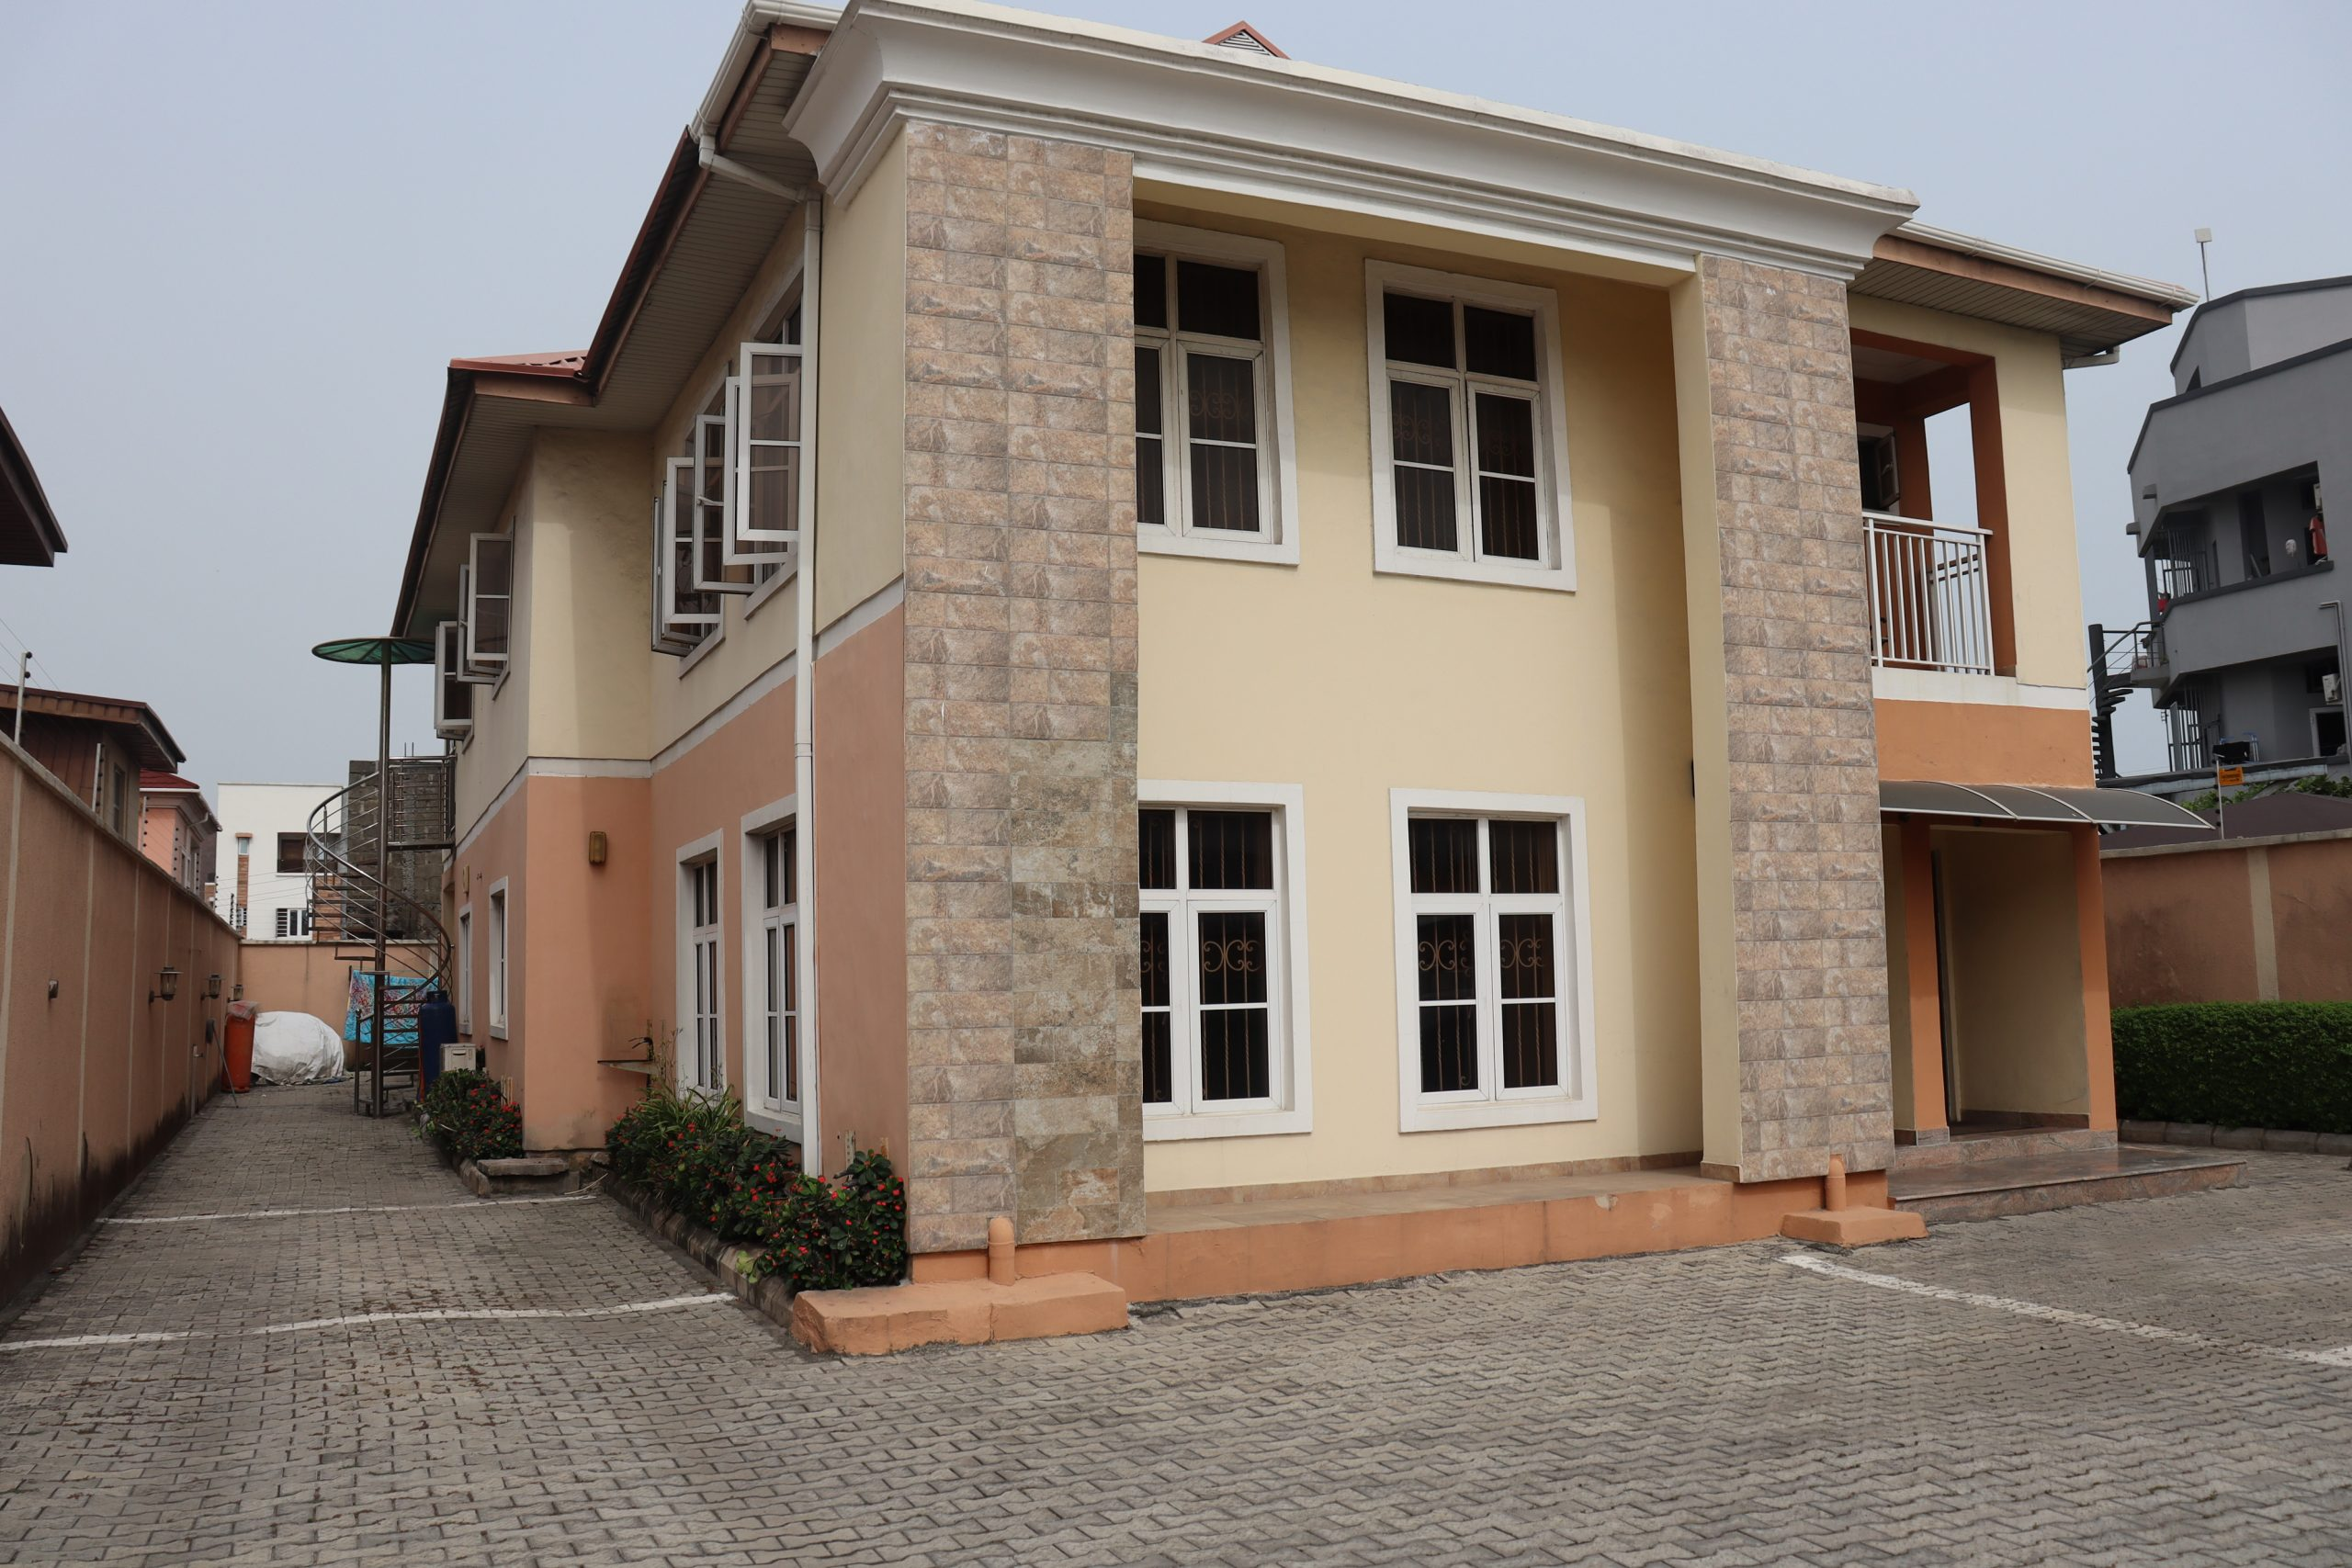 3 Bedroom ground floor unit at Lekki Phase 1